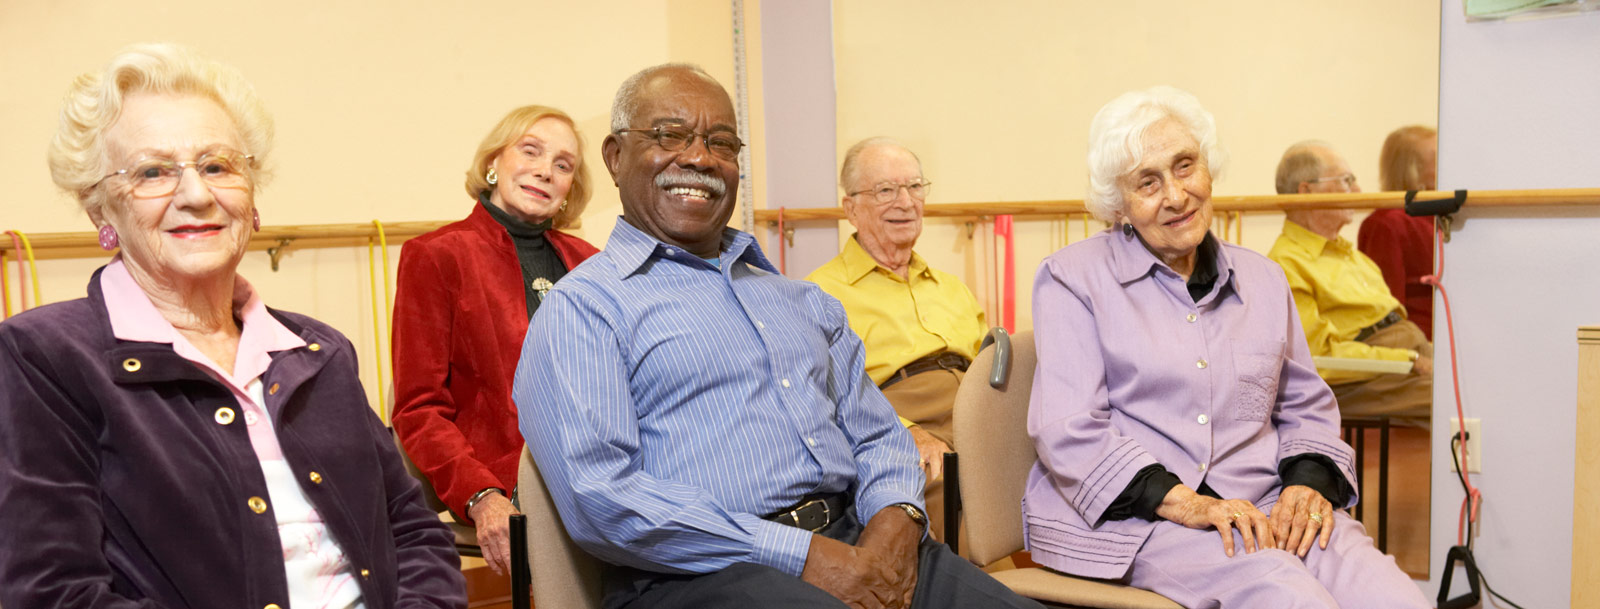 Senior living in Farmington cares about your health and wellness